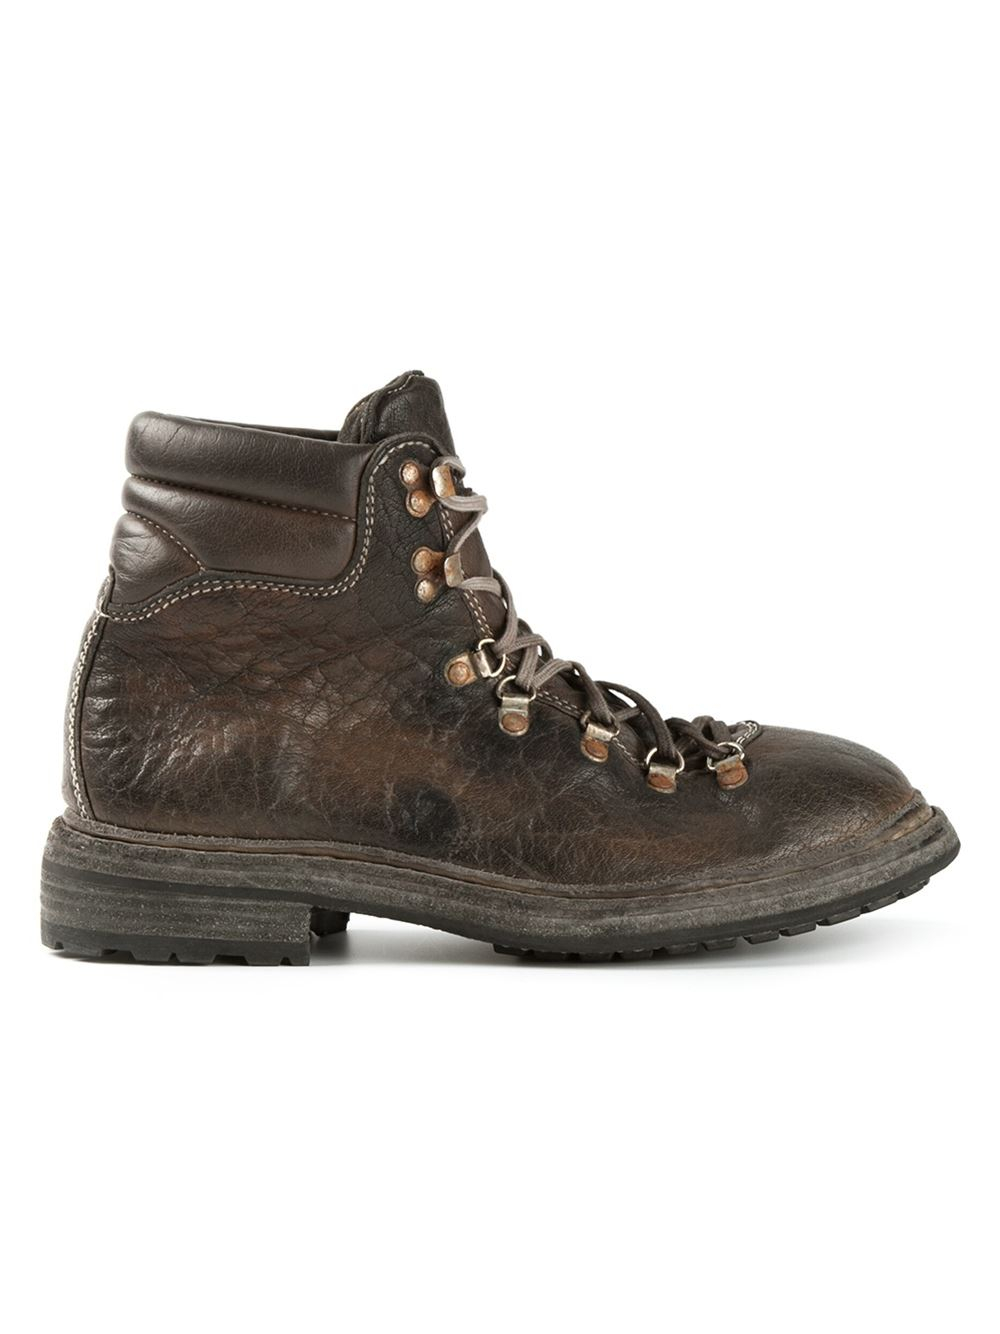 Guidi Distressed Cordovan Trekking Boots In Brown For Men